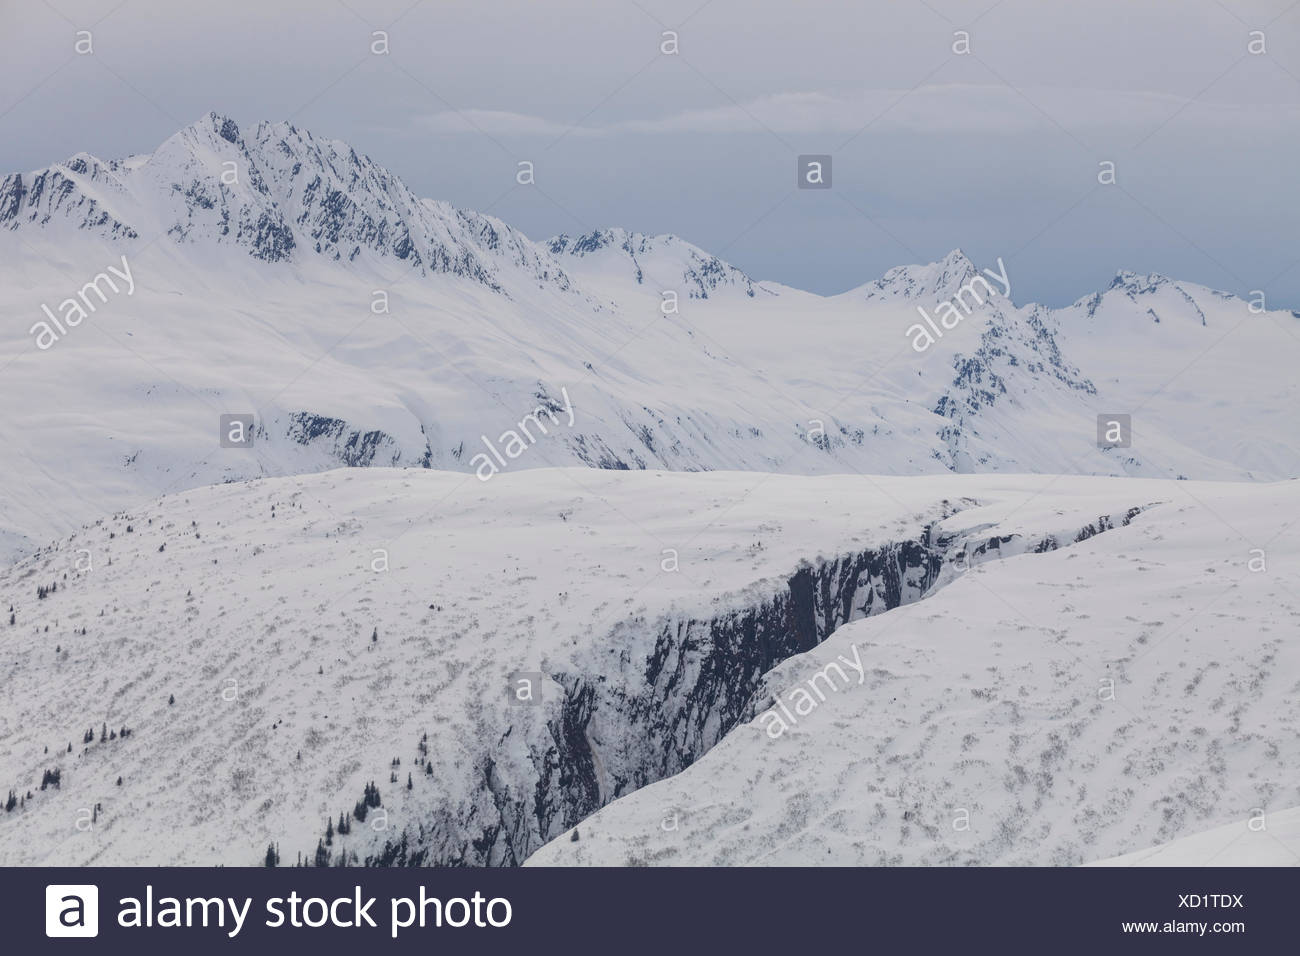 View of Bench Creek and the Chugach Mountains from Thompson Pass, Alaska. - Stock Image